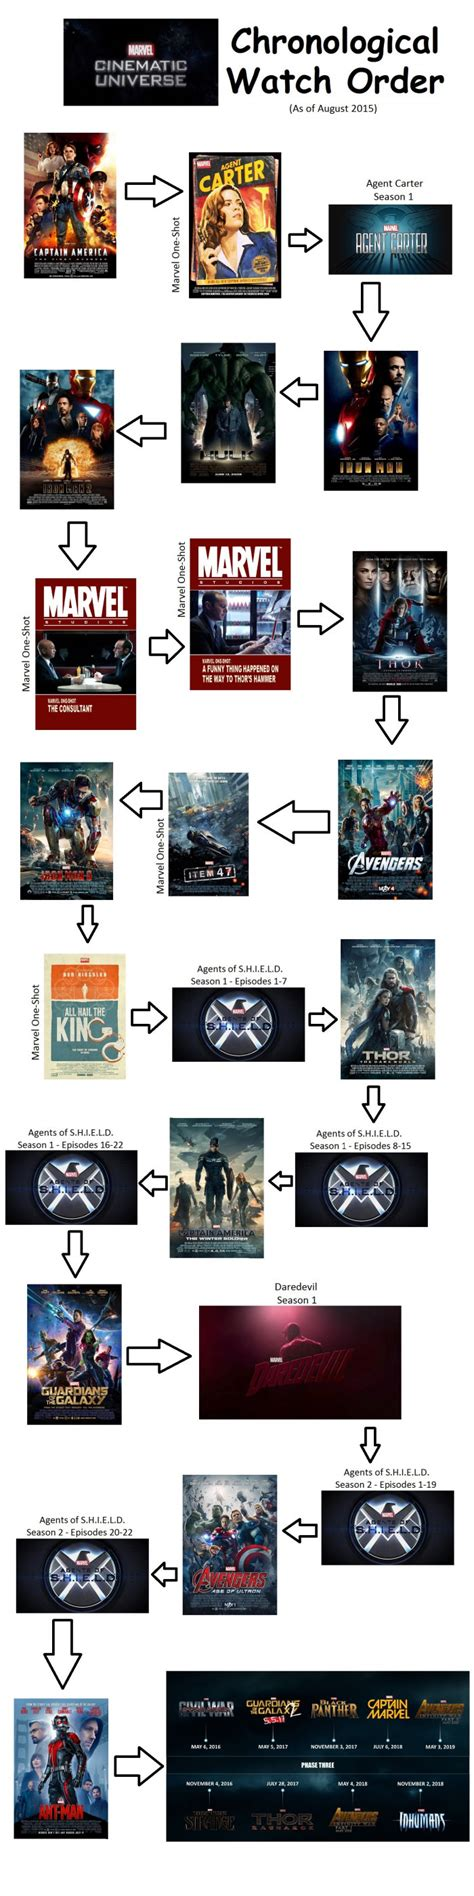 film marvel timeline graphic shows how to watch every marvel cinematic universe